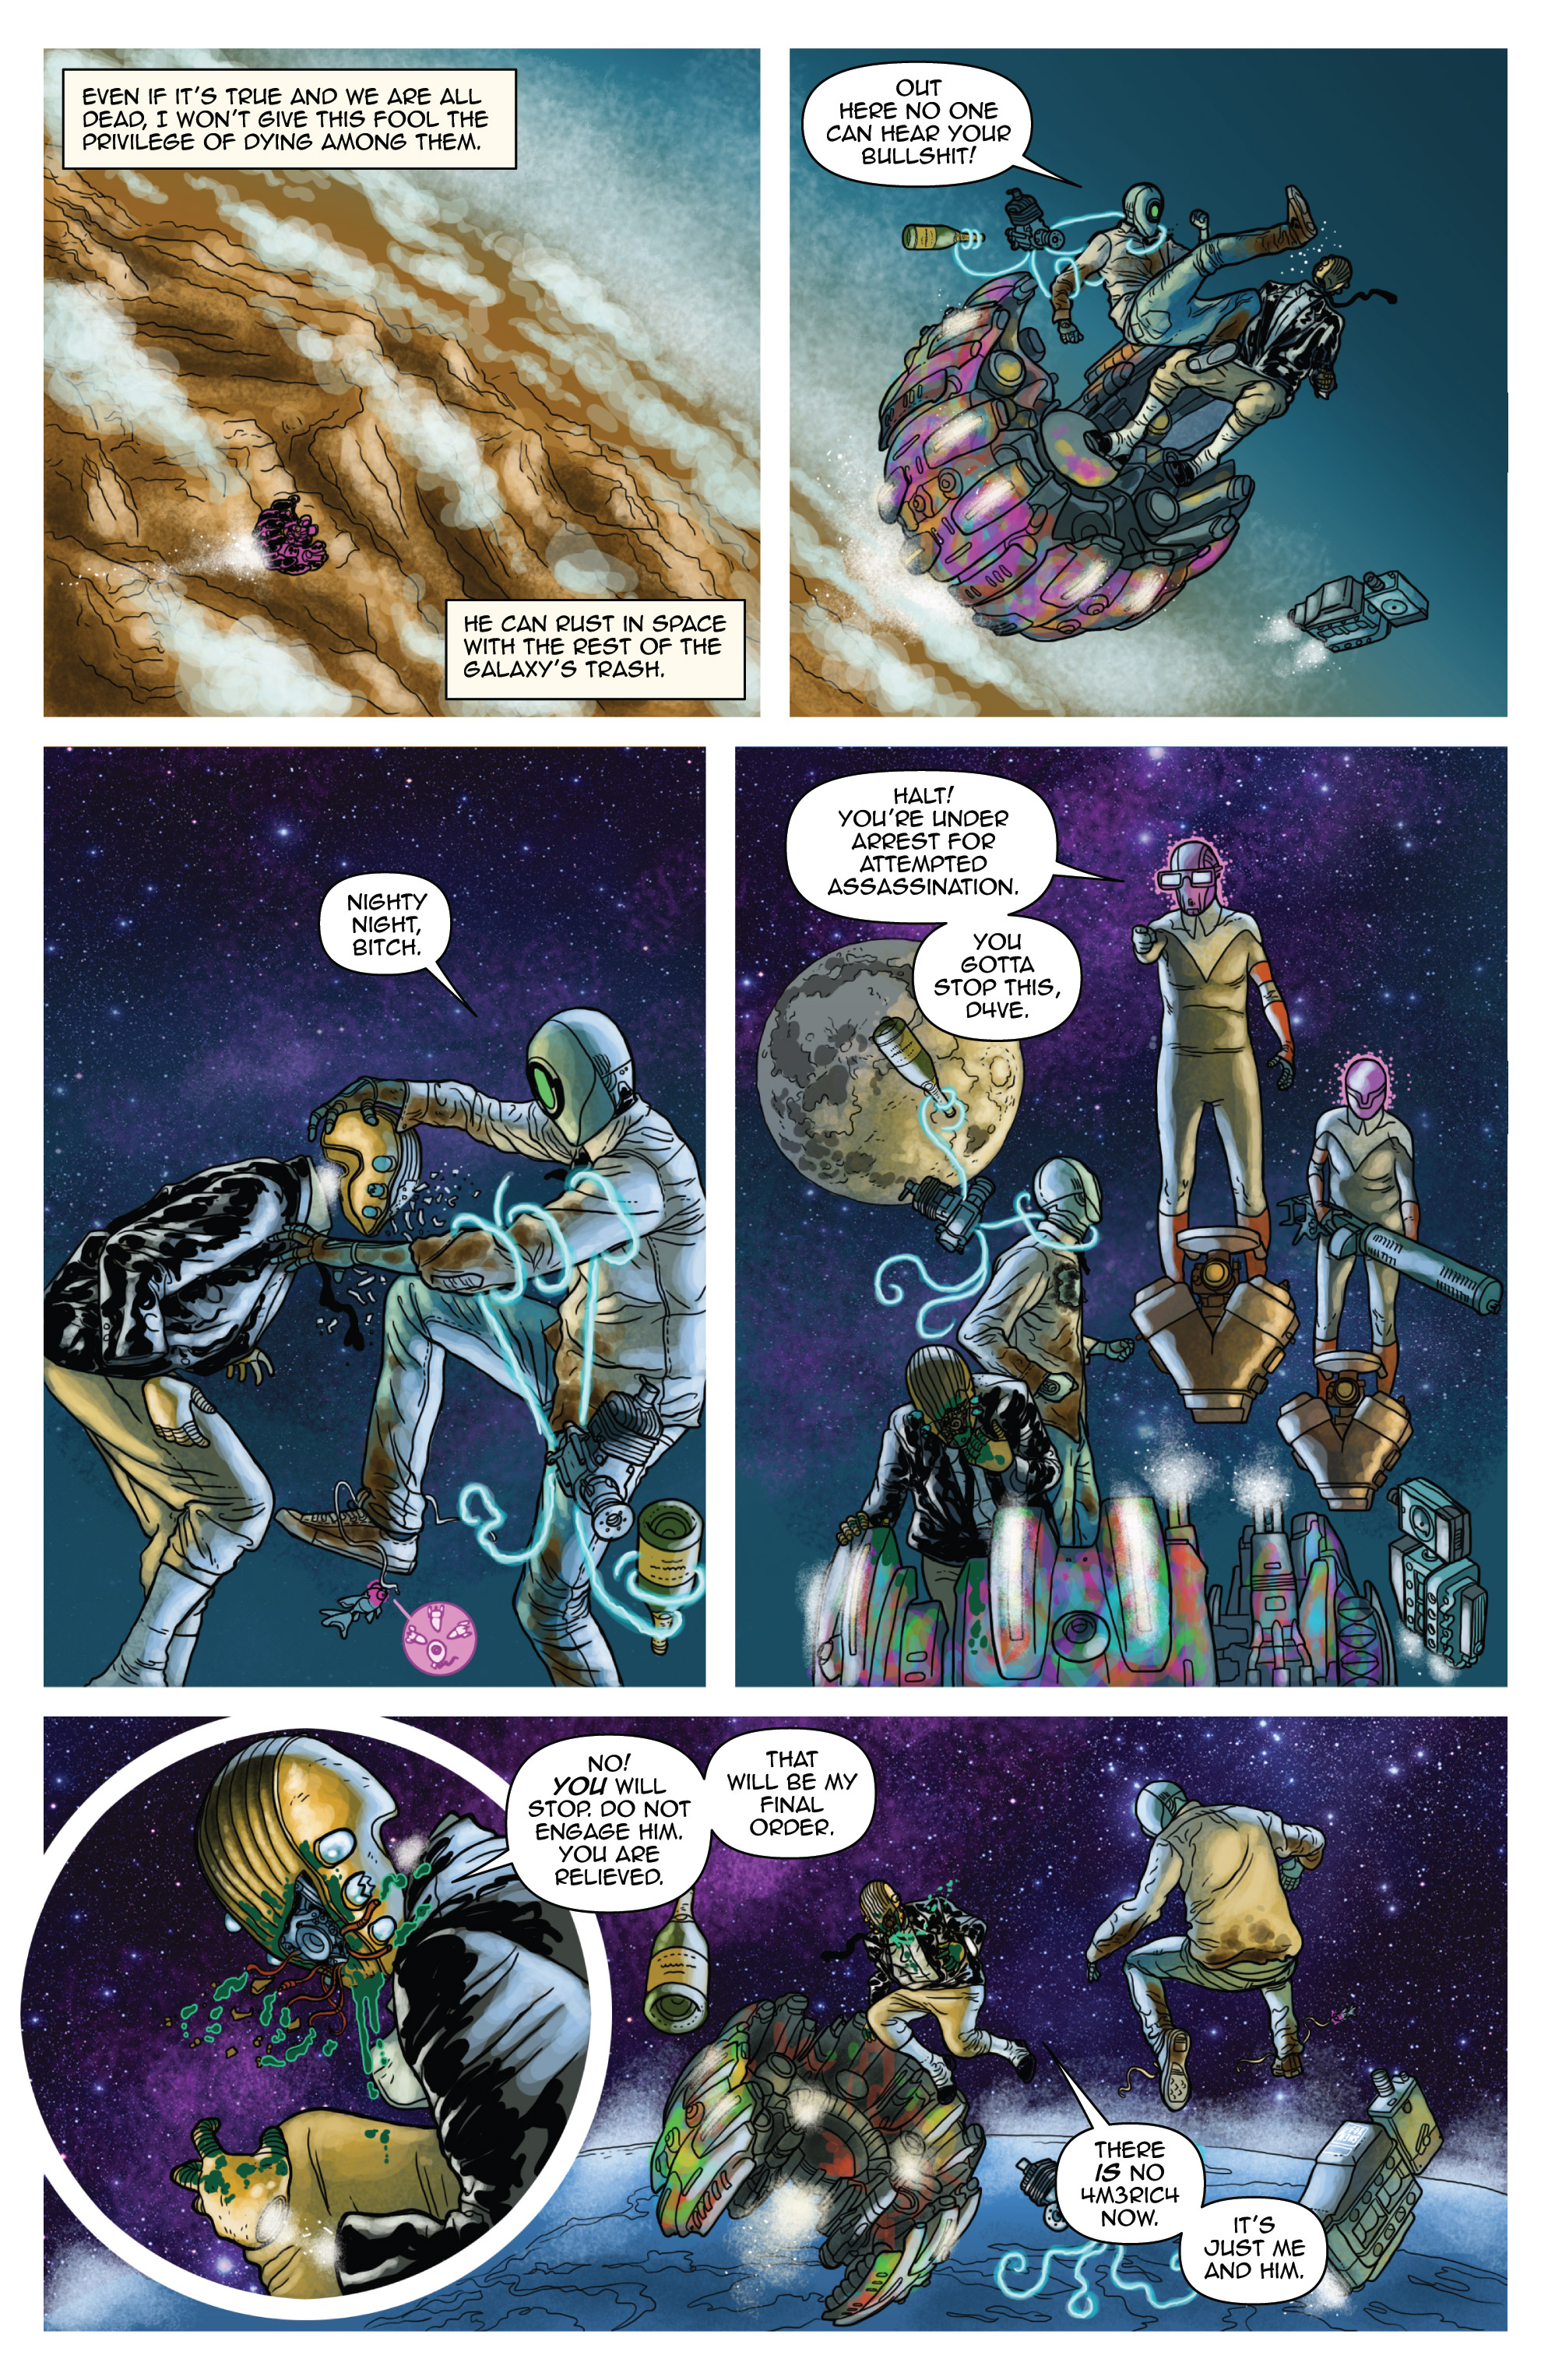 Read online D4VEocracy comic -  Issue #4 - 15